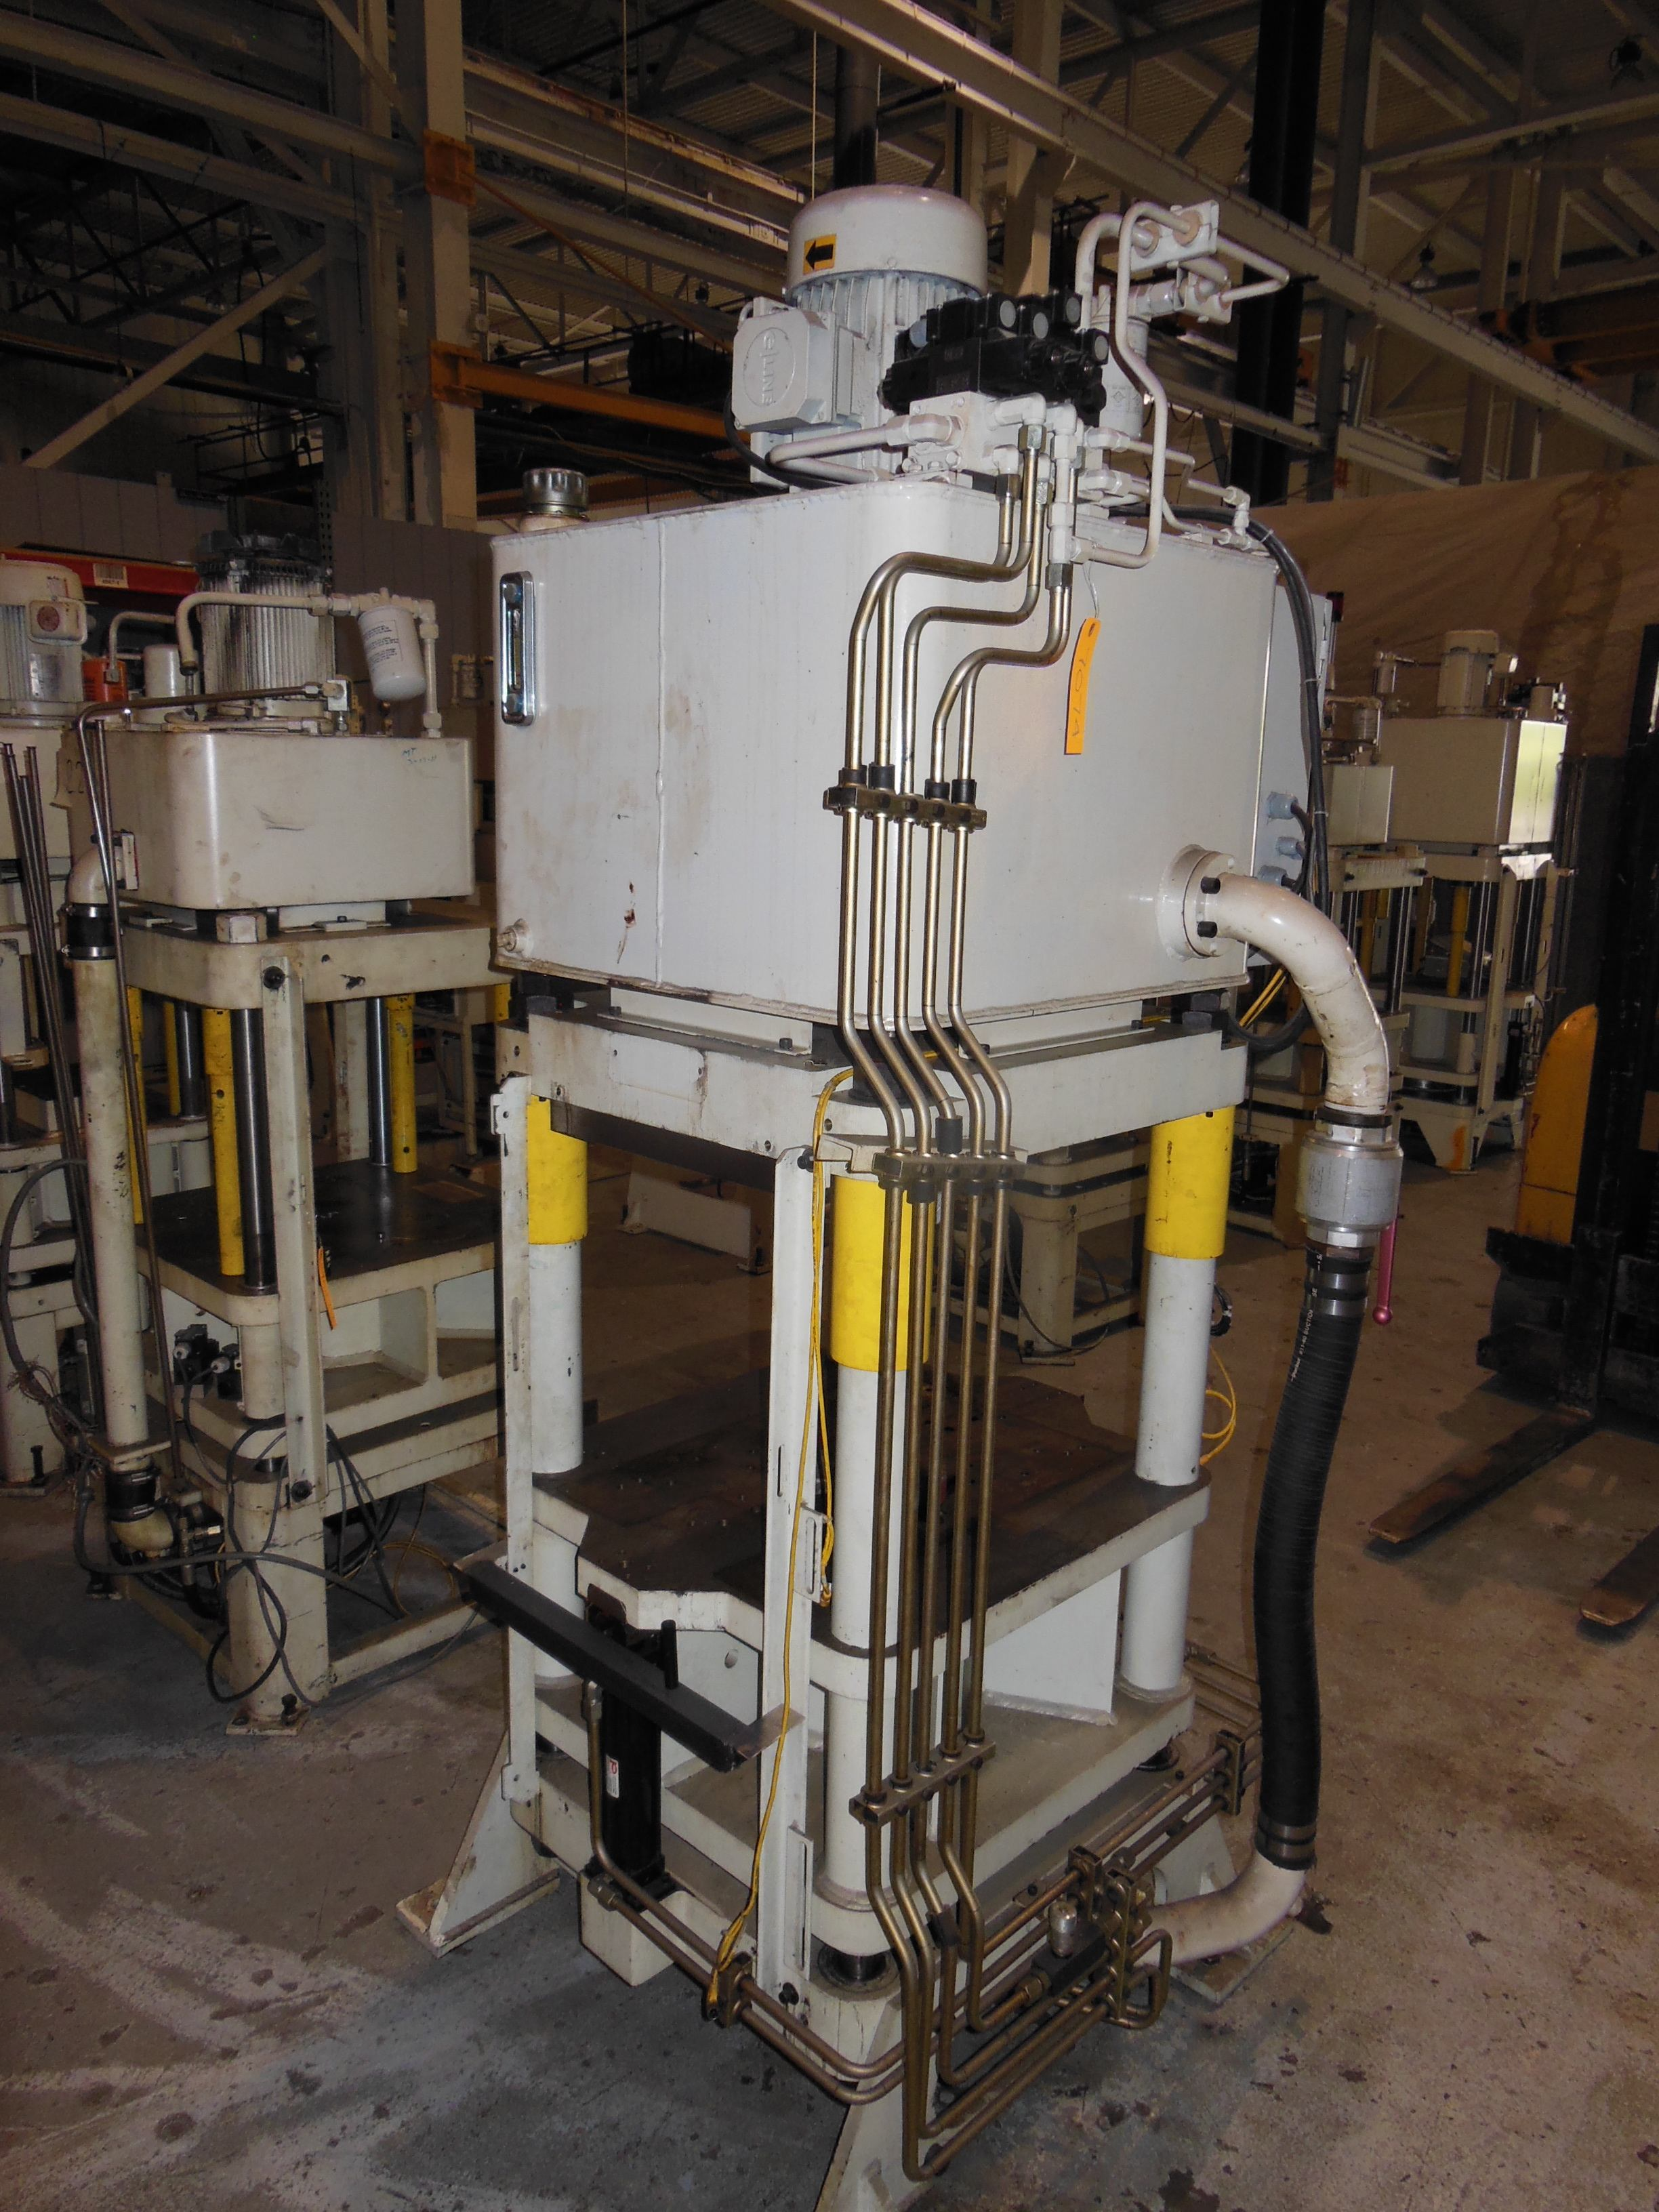 "60 TON FISHER DYNAMICS UP ACTING HYDRAULIC 4 POST PRESS, MODEL AJF-7, 7"" STR, 19.75"" X 19.75"" WORK AREA BED"